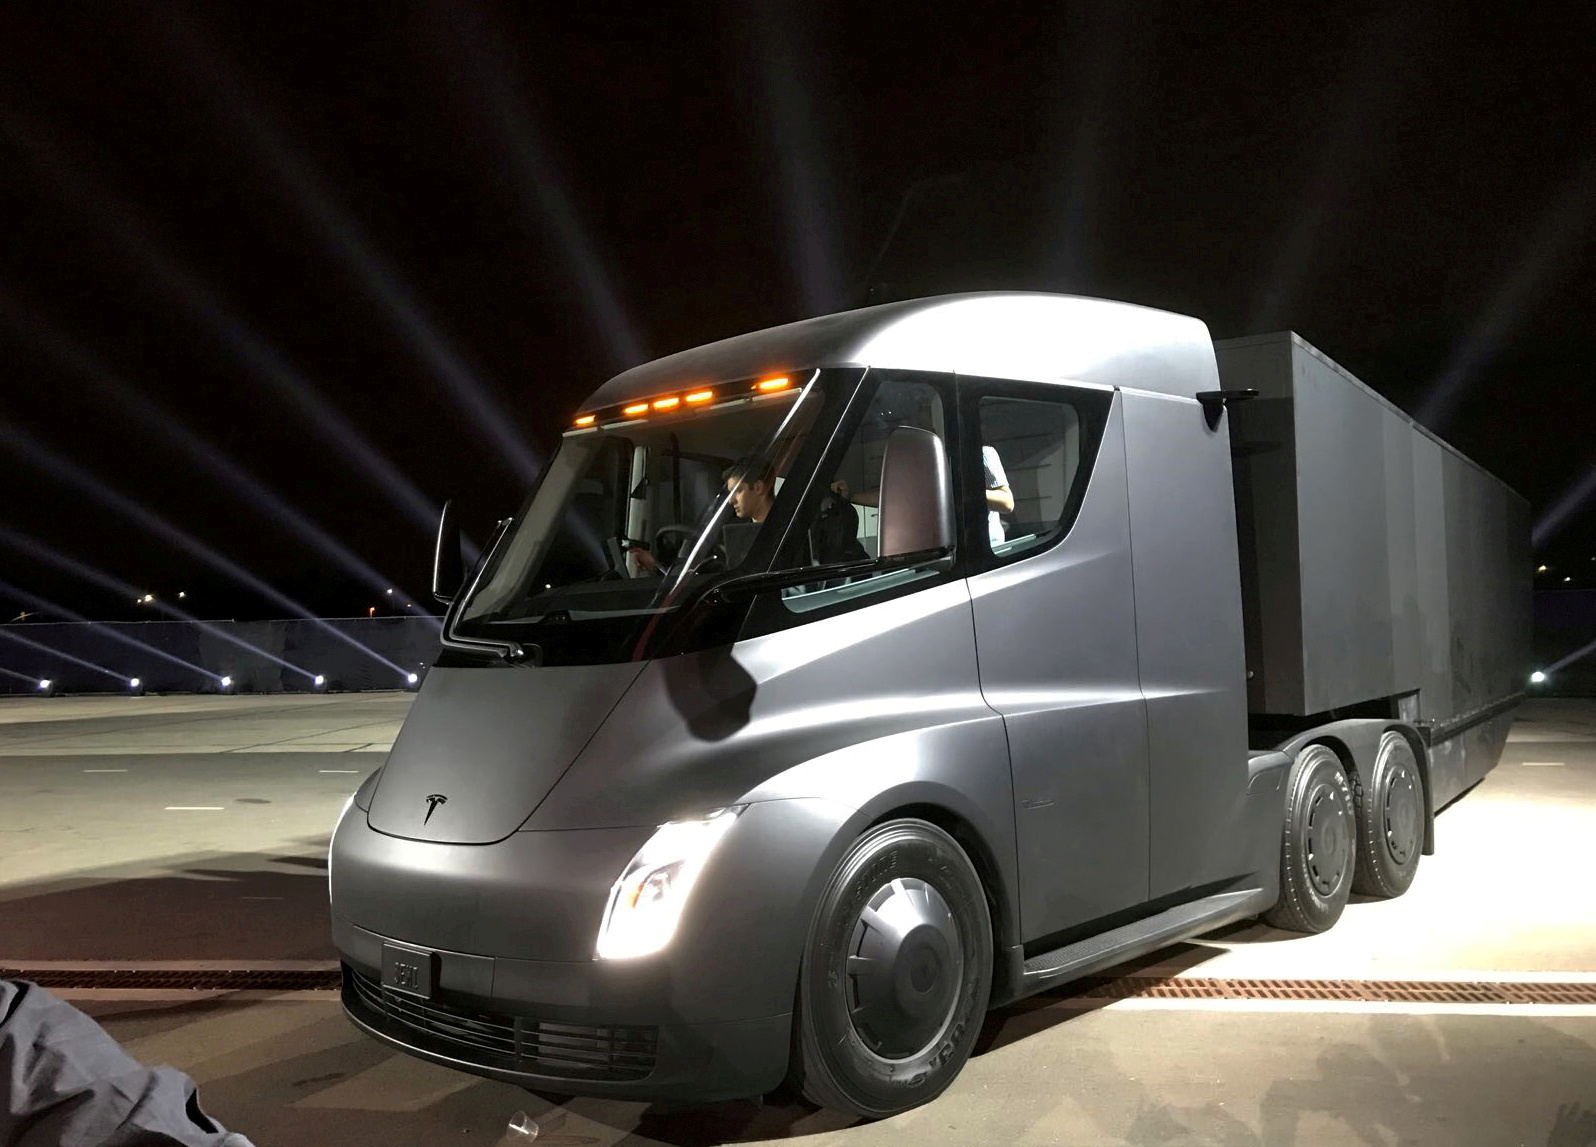 Tesla's new electric semi truck is unveiled during a presentation in Hawthorne, California, U.S., November 16, 2017. REUTERS/Alexandria Sage/File Photo